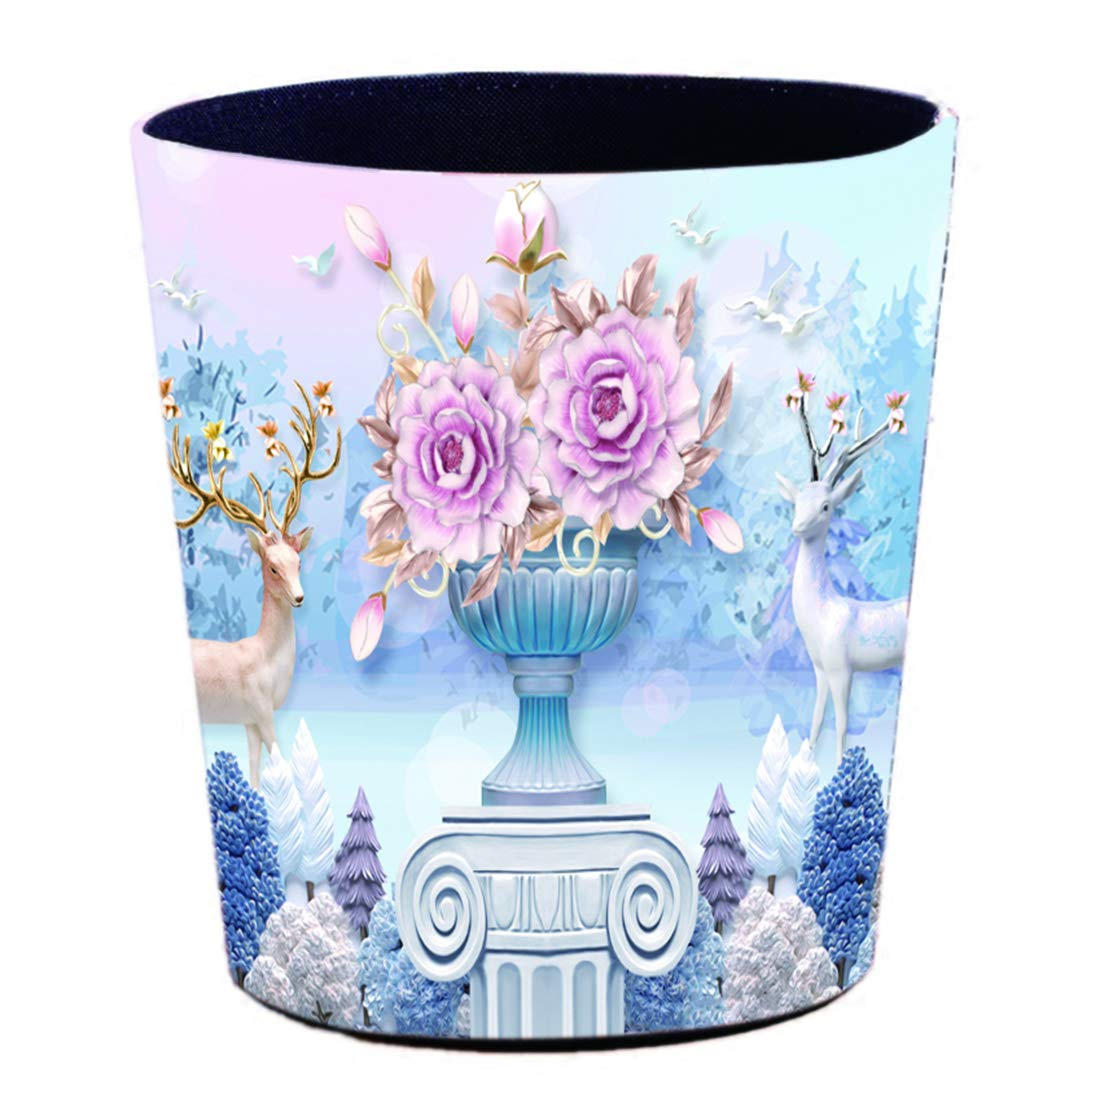 Lingxuinfo Retro Style Small Trash Can Wastebasket, Decorative Trash Can Waste Paper Basket Waste Container Bin for Bathroom, Bedroom, Office and More, 10L Capacity